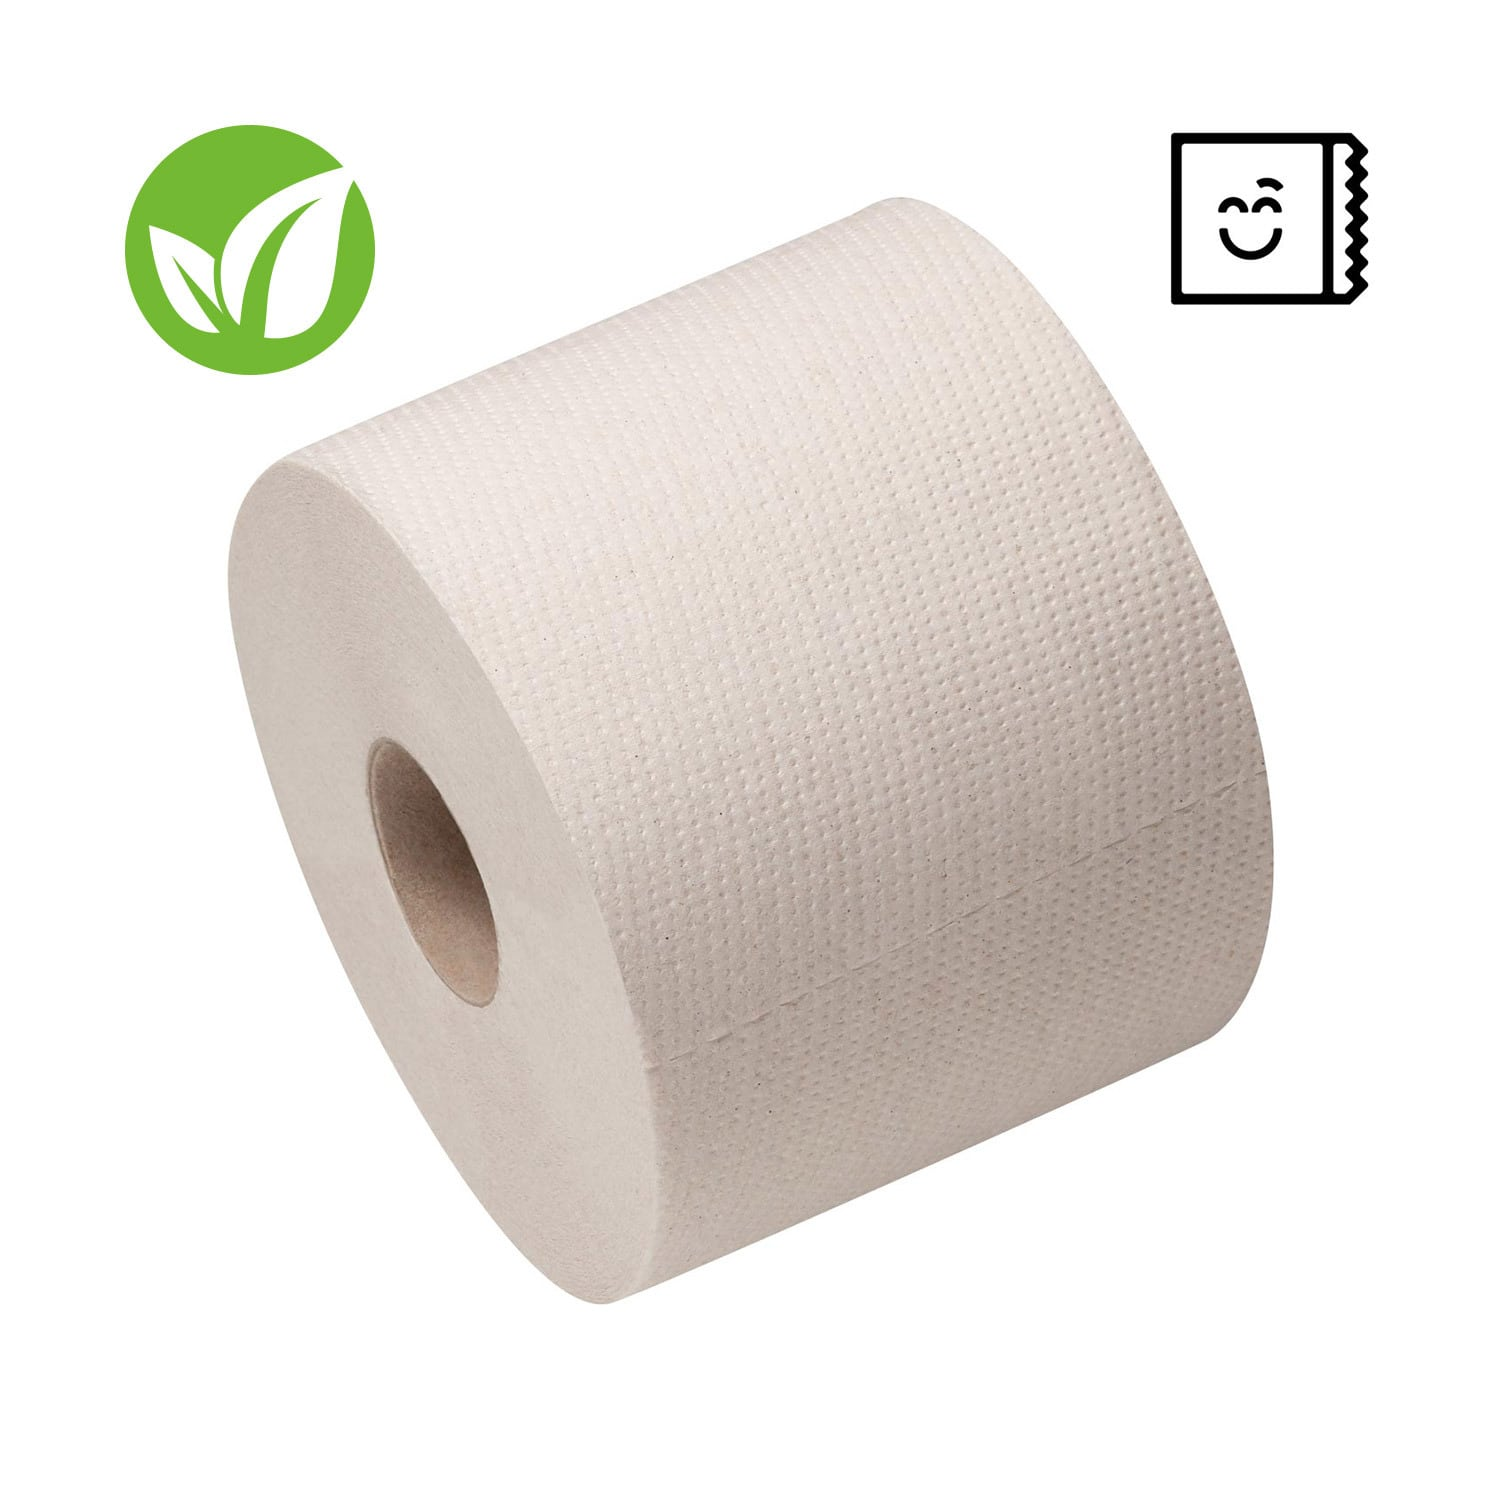 https://static.praxisdienst.com/out/pictures/generated/product/1/1500_1500_100/140434_green_hygiene_rolf_toilettenpapier_2_web_eco.jpg